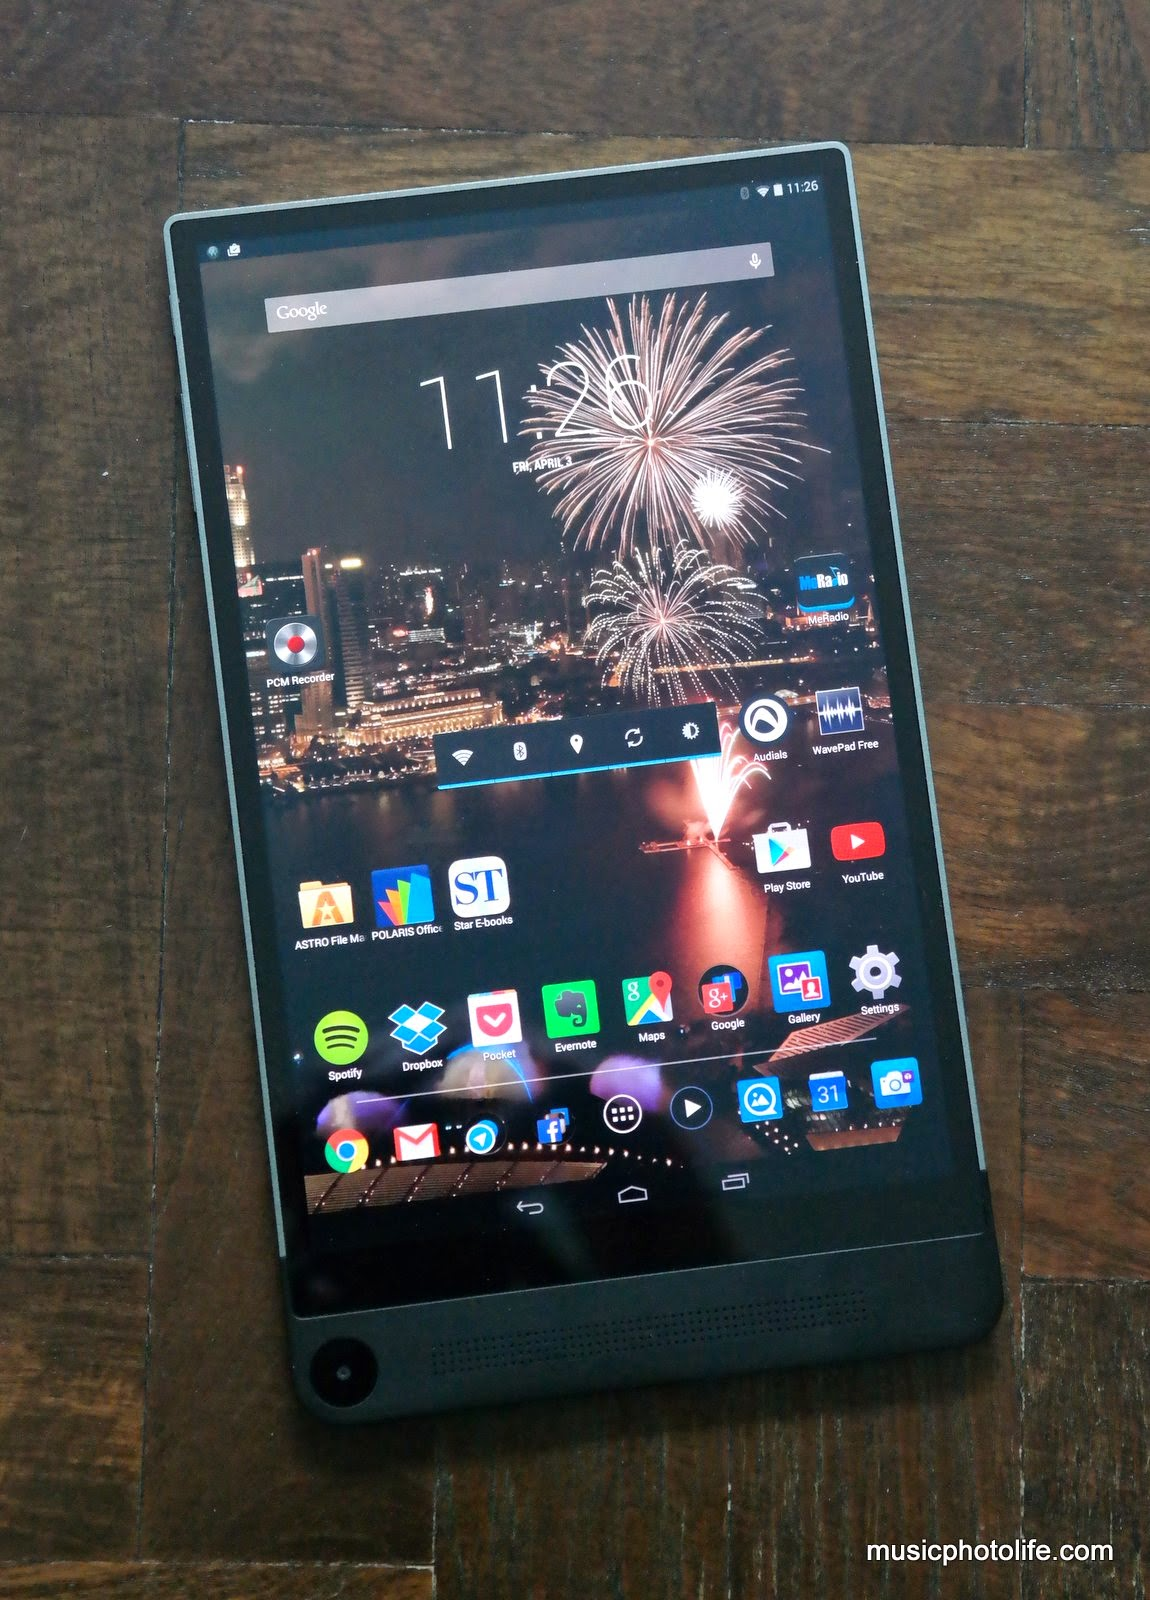 Dell Venue 8 7000 Android Tablet Review